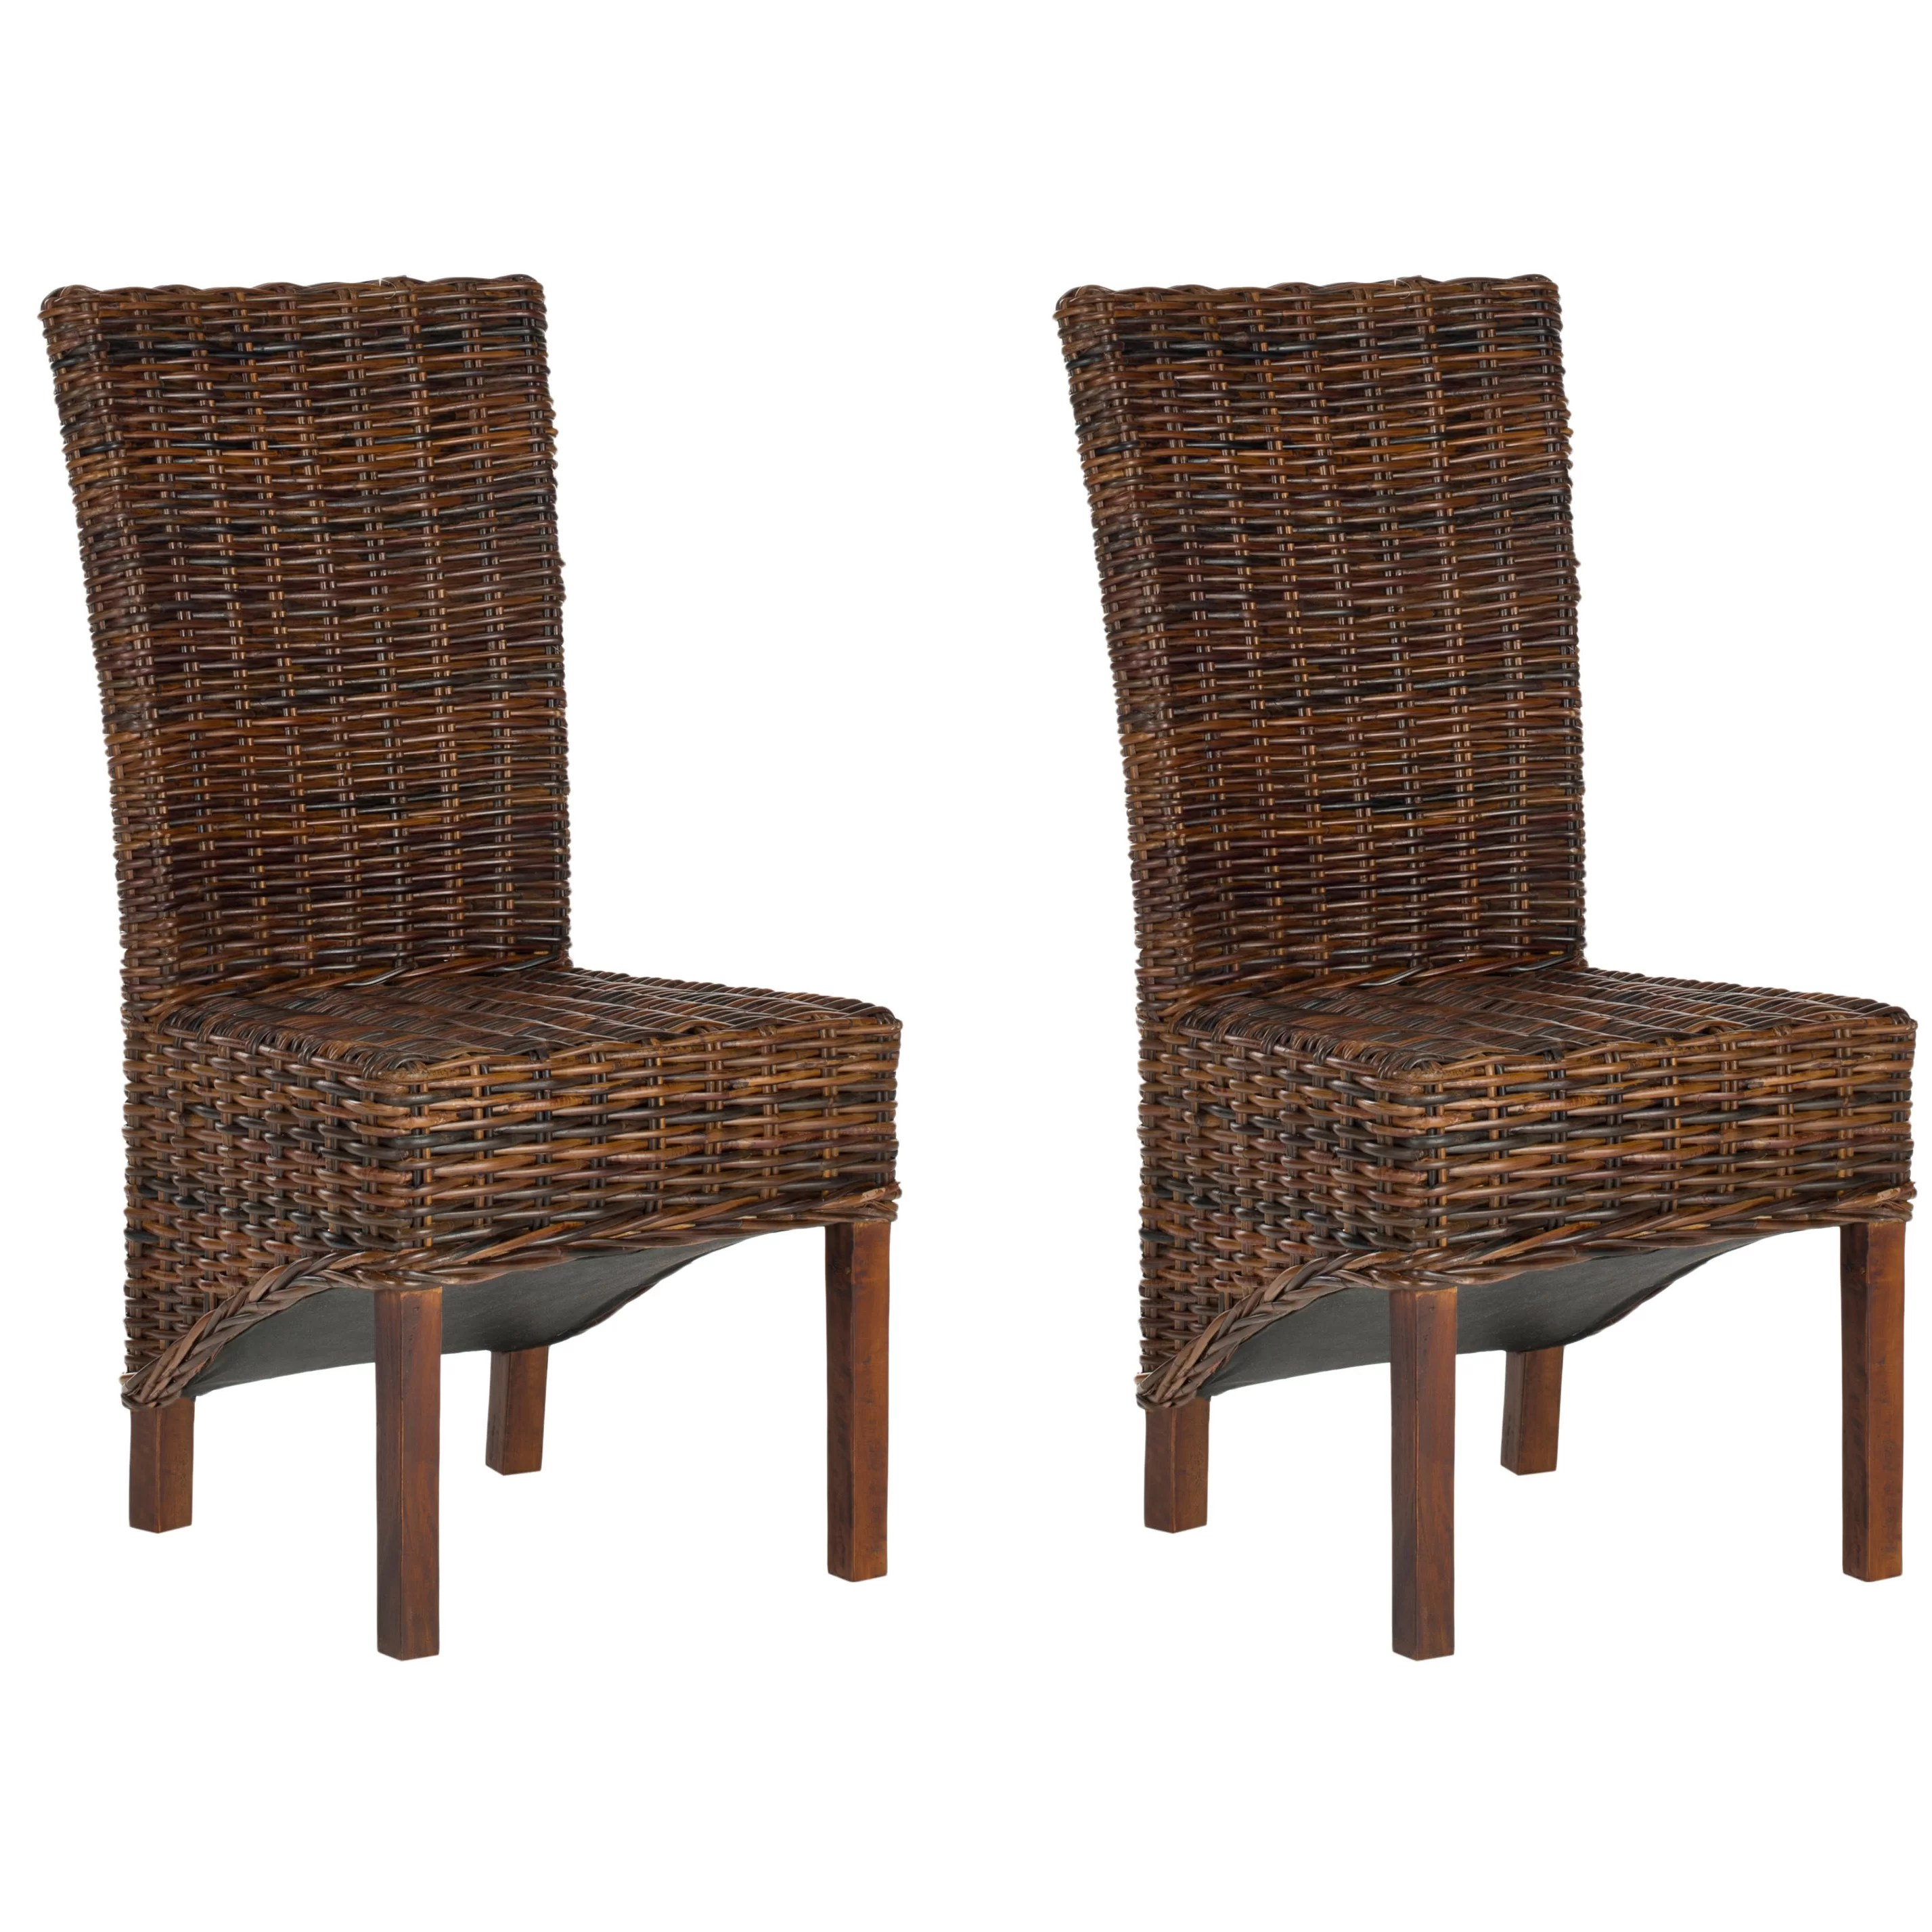 Wayfair Dining Chairs Safavieh Ridge Side Chair And Reviews Wayfair